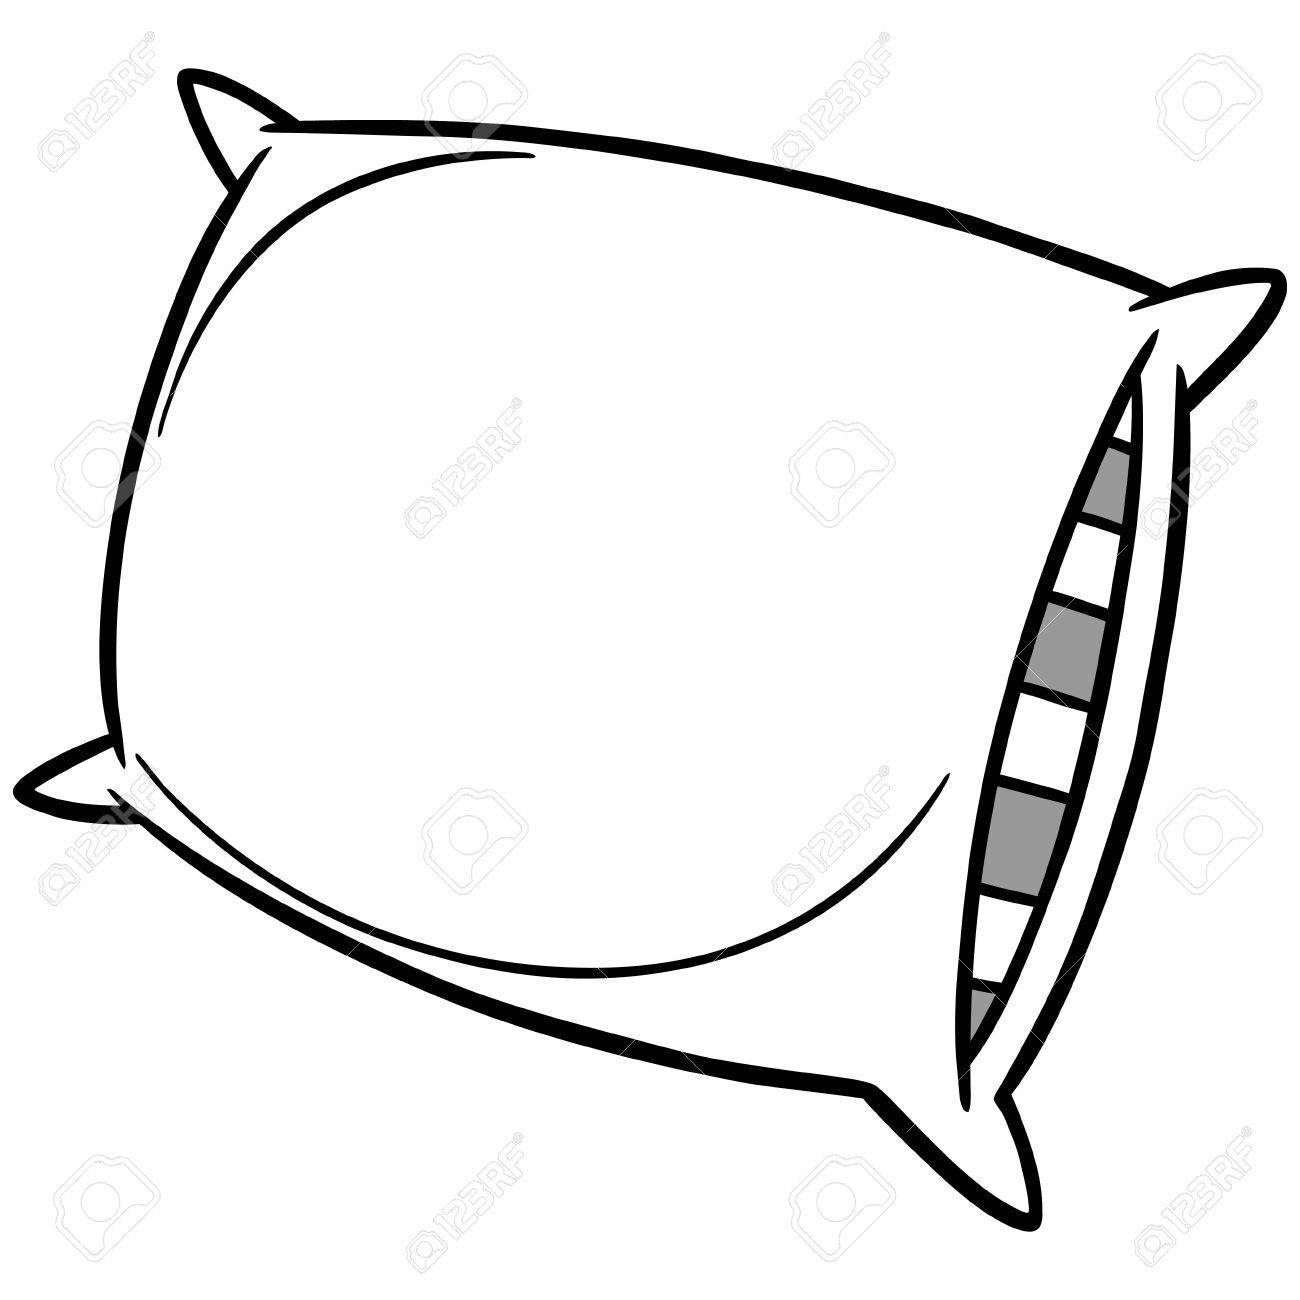 pillow party illustration